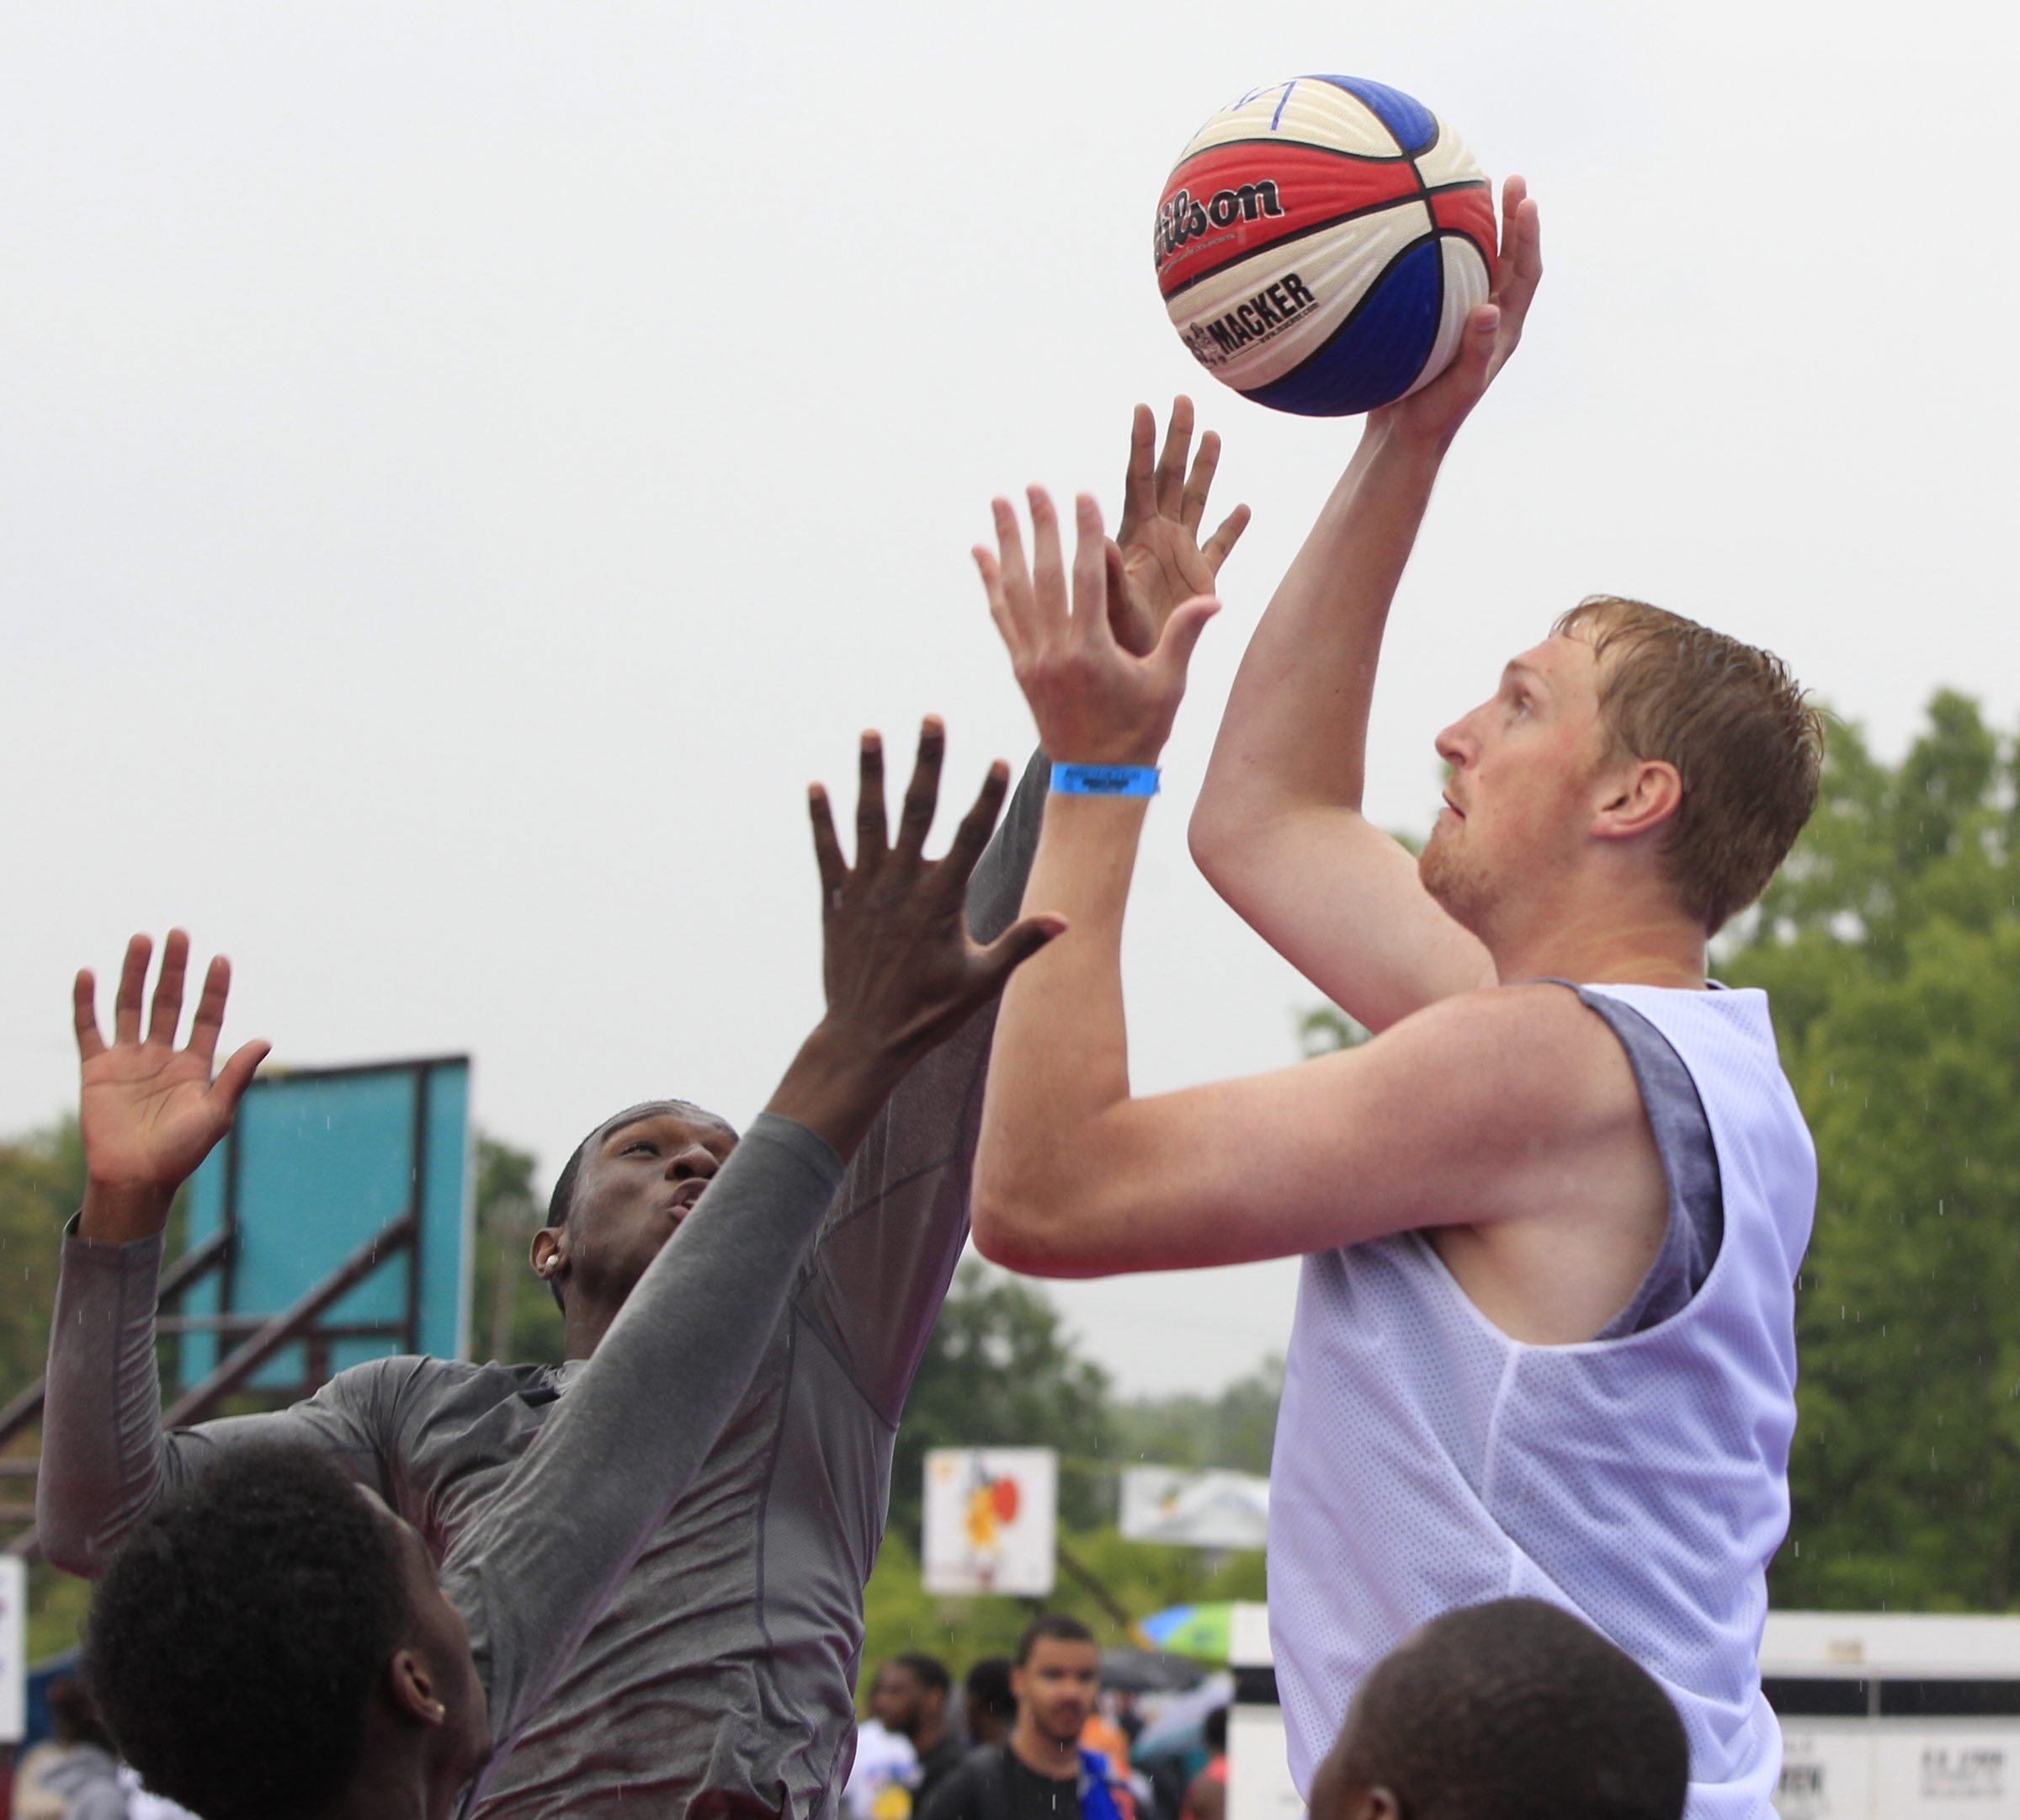 Blake McLimans, who played under coach John Beilein at Michigan, puts up two points for his Monstars 2 team. View a photo gallery from Saturday's Gus Macker action at BuffaloNews.com.